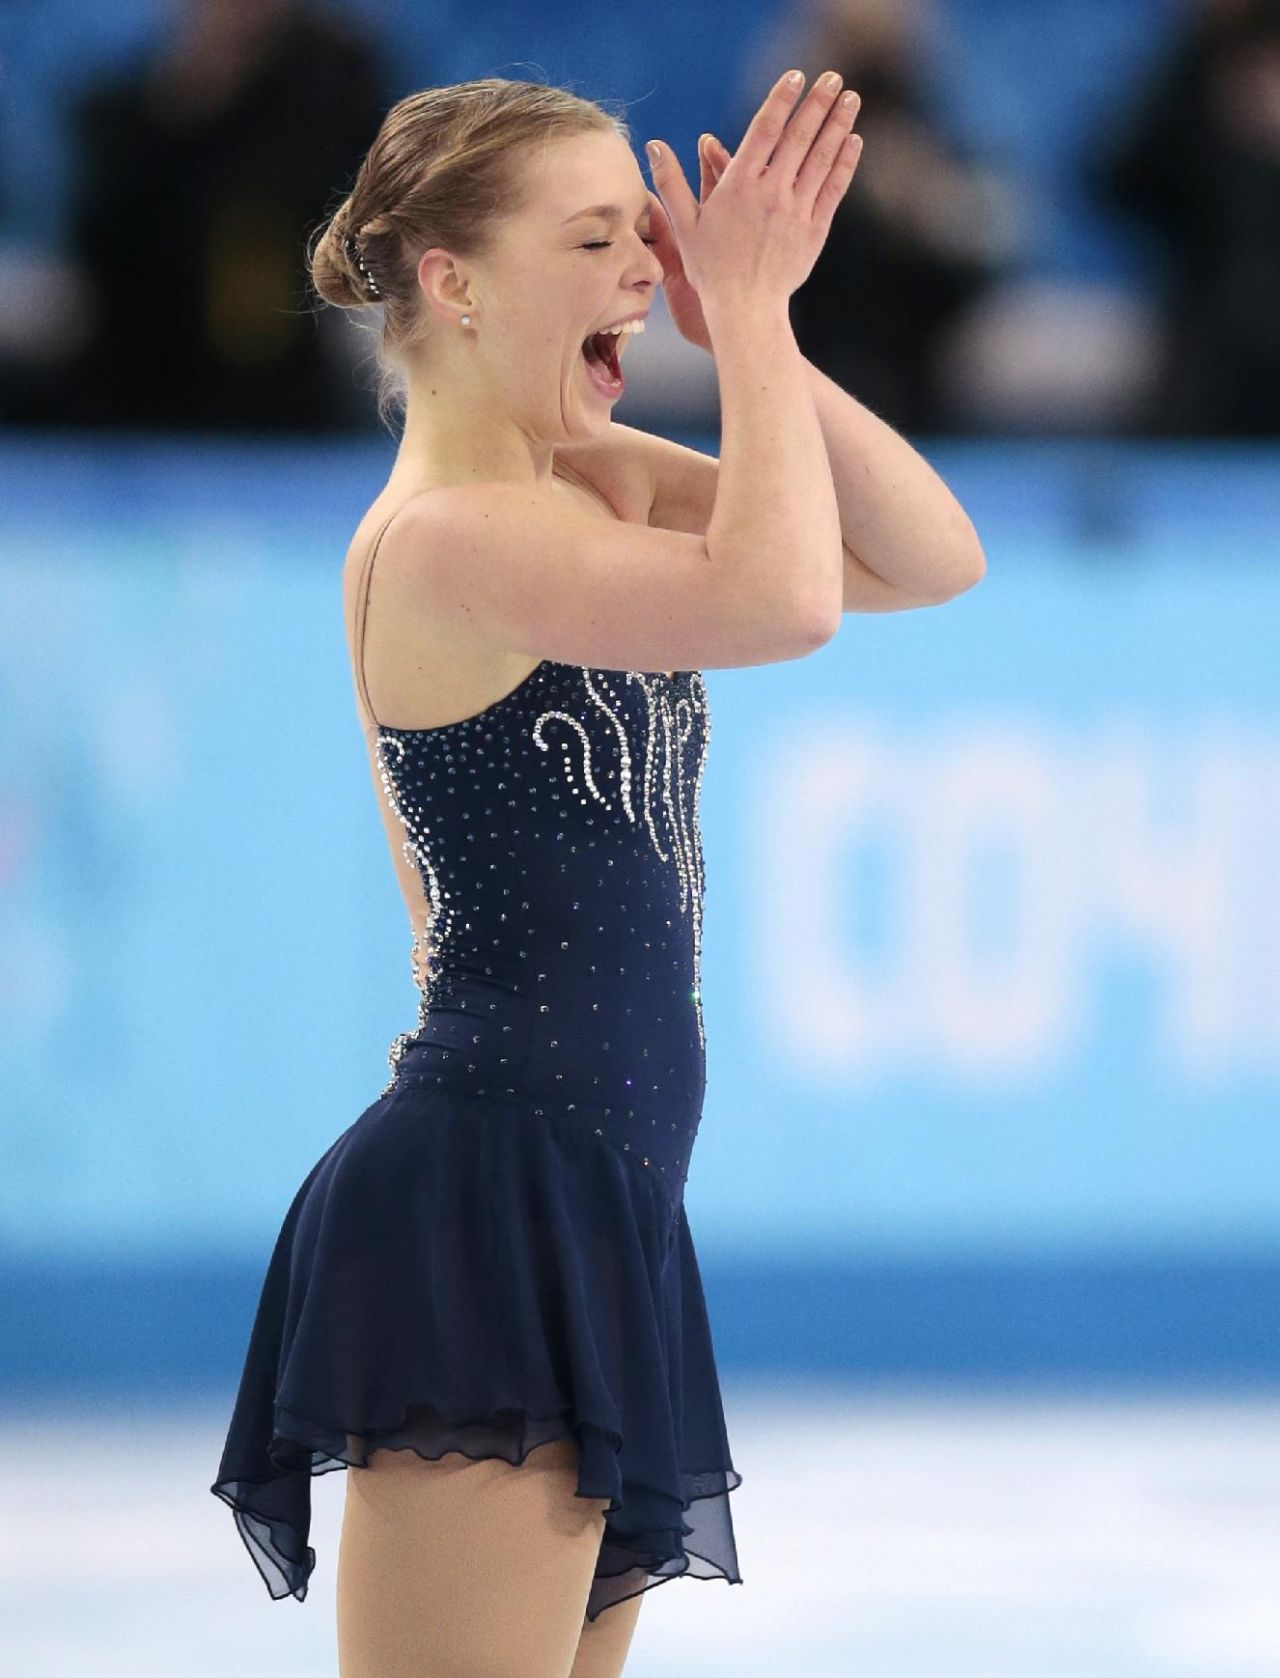 Nicole Rajicova - Ladies Short Program – 2014 Sochi Winter Olympics